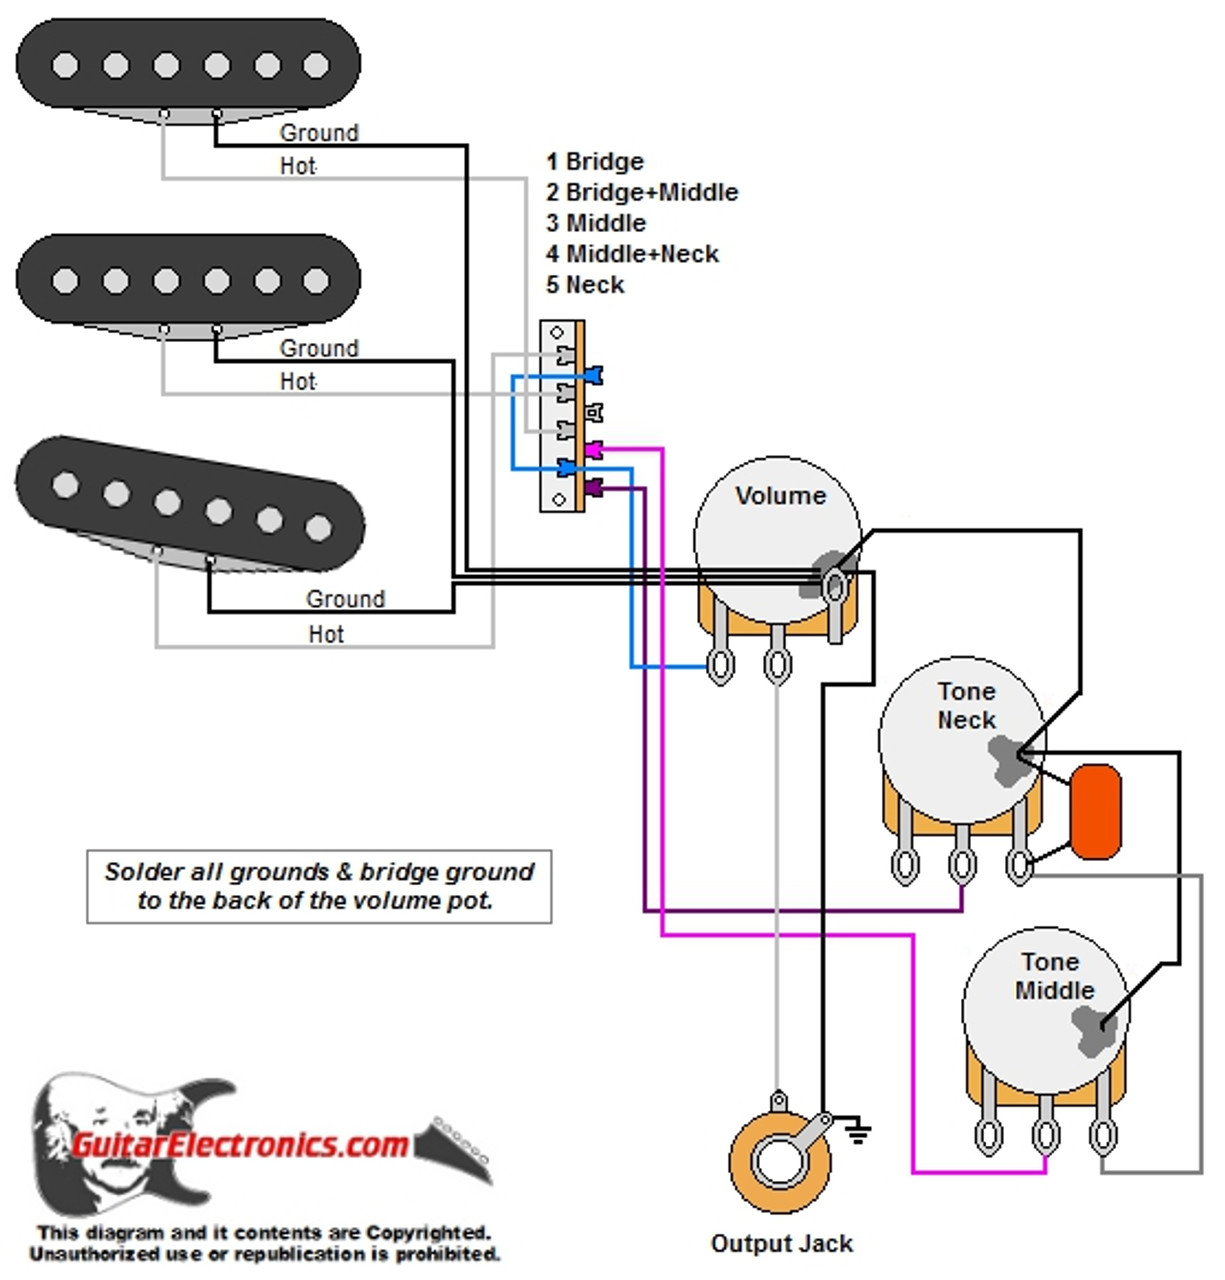 About Honda Trx200ex Msd Ignition System And Schematics Diagram